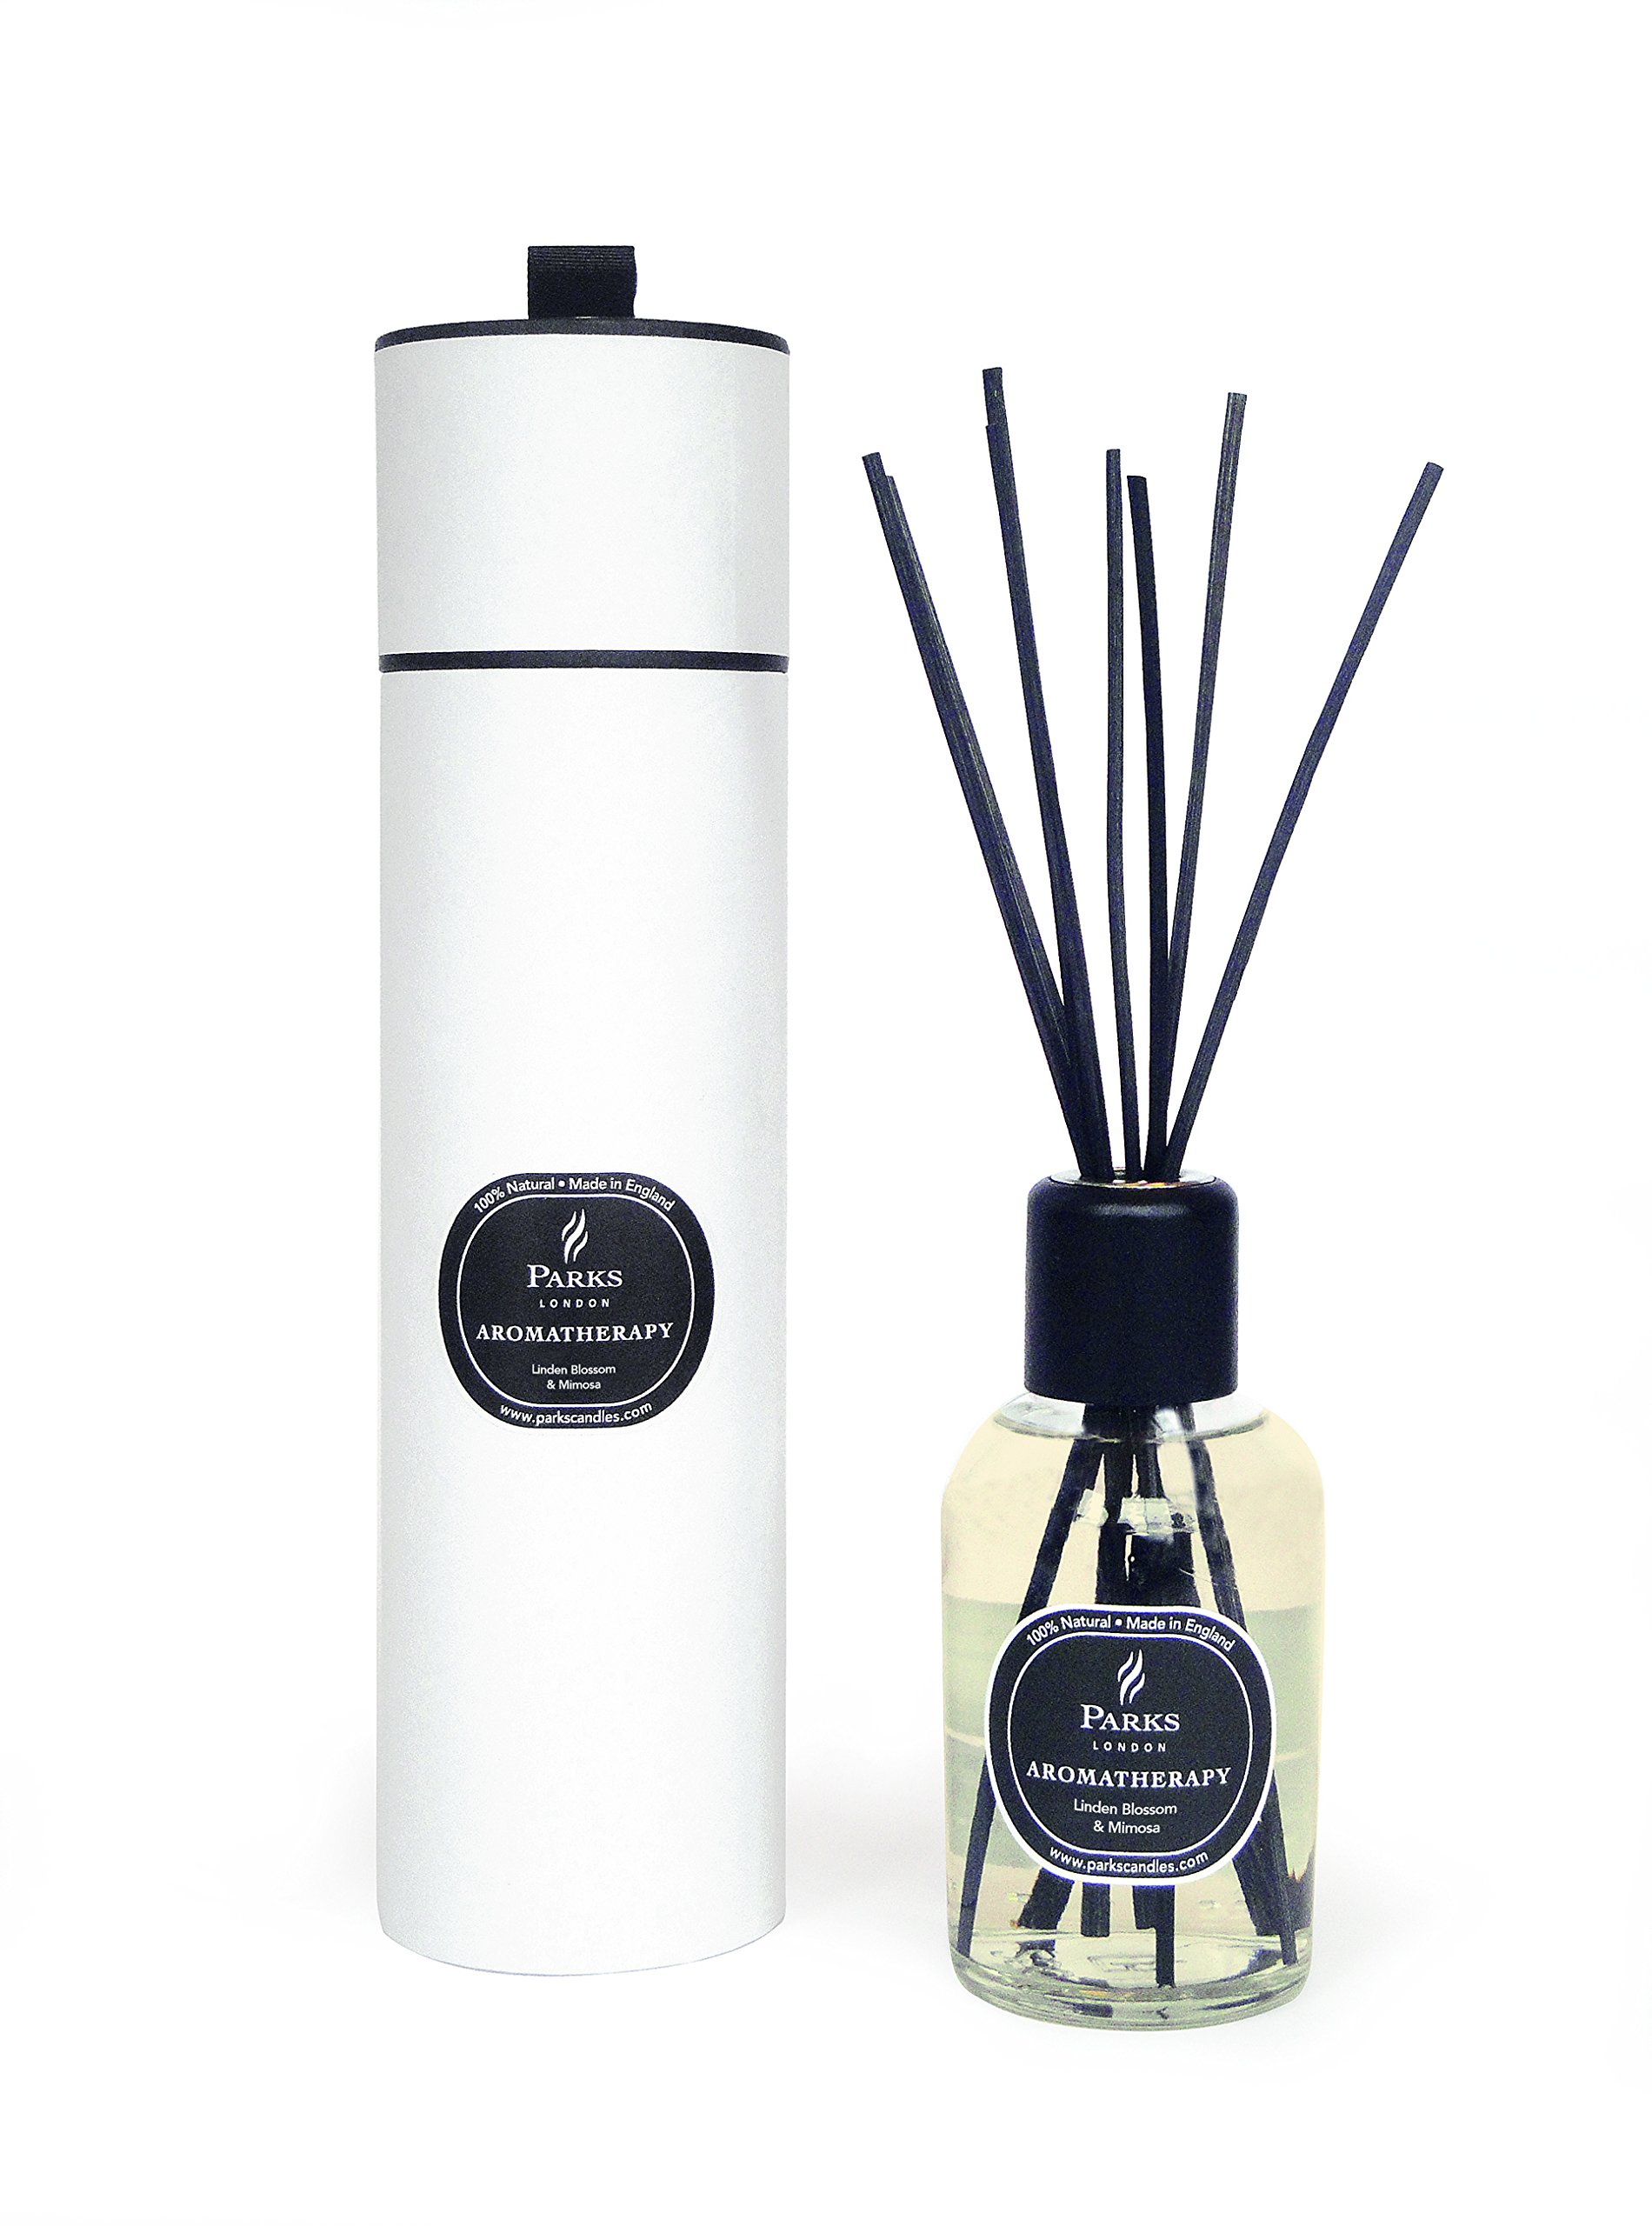 Linden Blossom and Mimosa Aromatherapy Reed Room Diffuser by Diffuser - Parks London (Image #1)